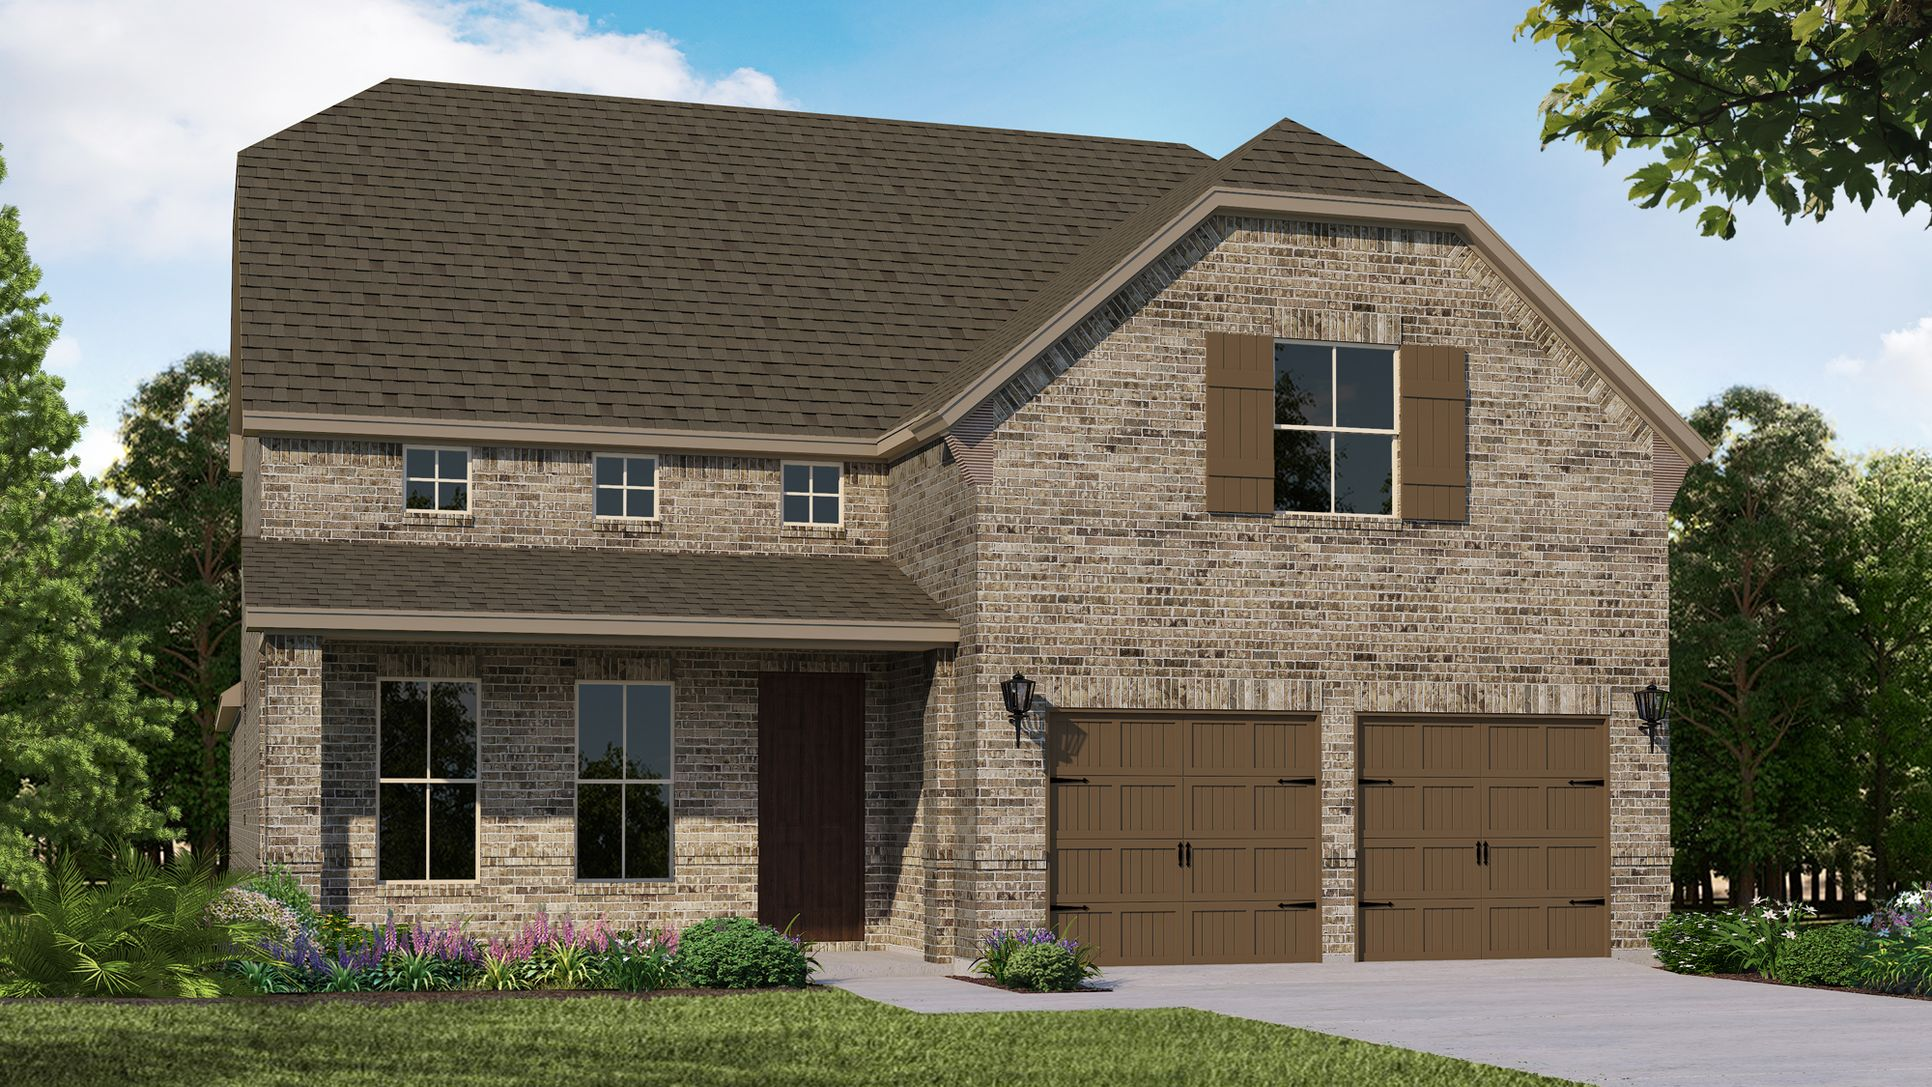 Exterior:Plan 1148 elevation A